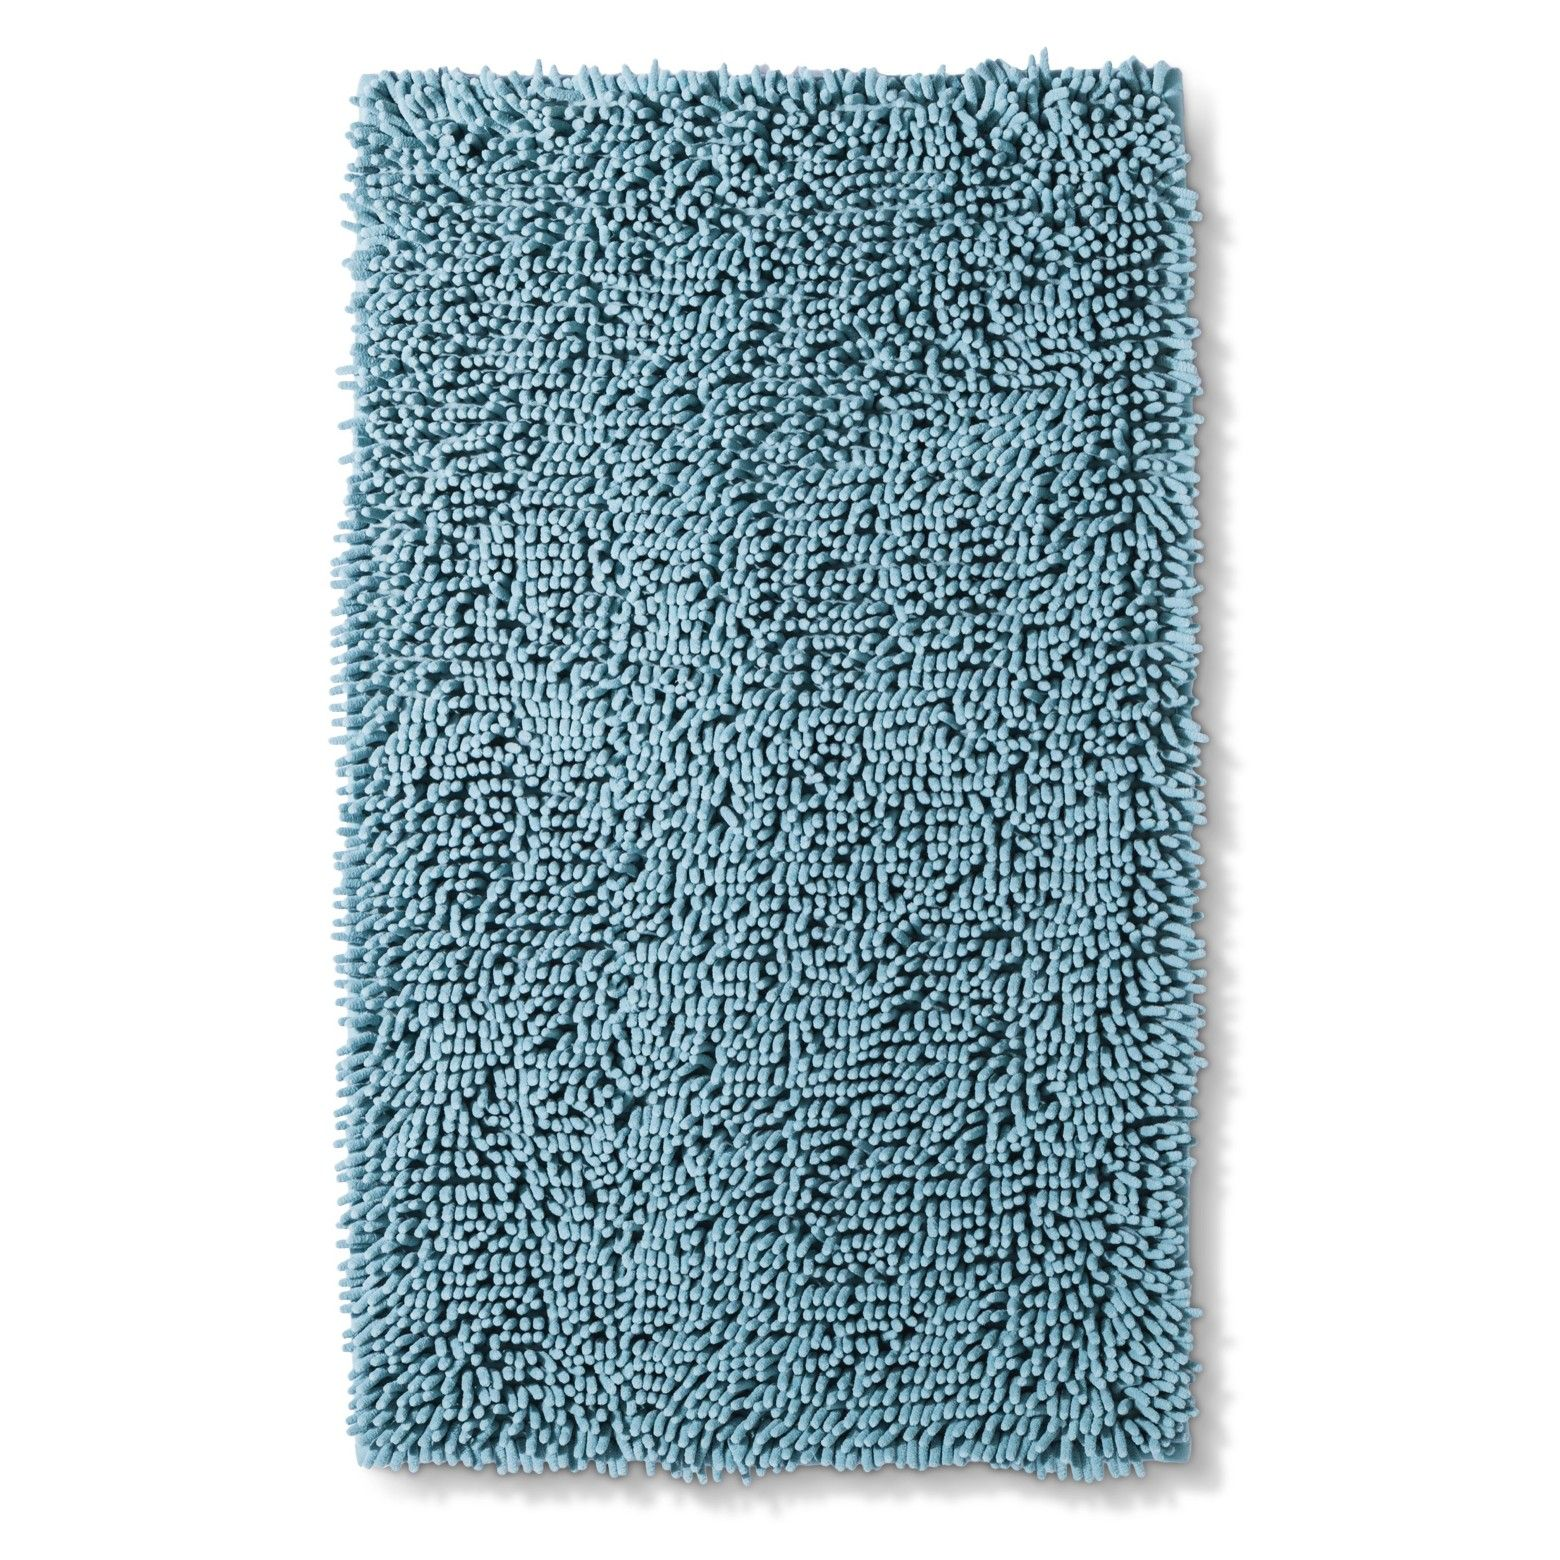 Mohawk Home Fusion Memory Foam Bath Mat Turn Your Bathroom Into A Spa And Pamper Yourself With The Plush Memory Foam Bath Rugs Bath Rugs Memory Foam Bath Mats [ 1560 x 1560 Pixel ]